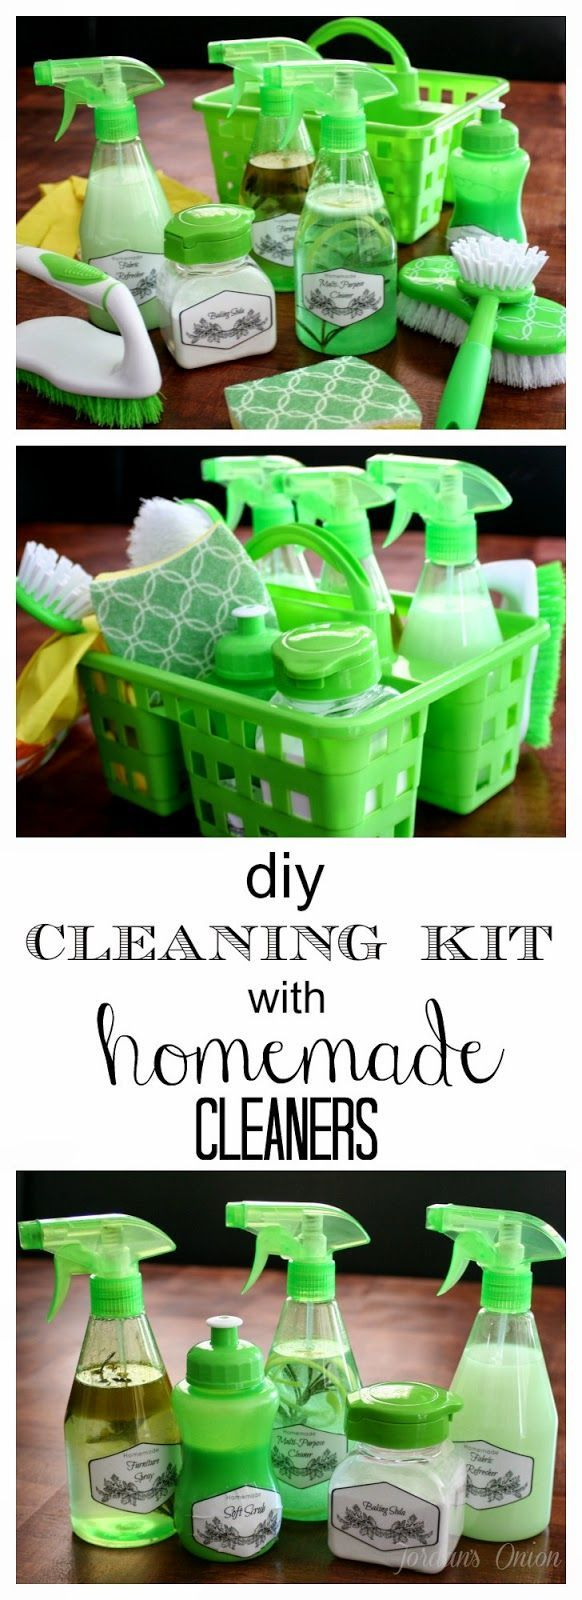 157 best images about young living diy recipes personal and cleaning products on pinterest. Black Bedroom Furniture Sets. Home Design Ideas